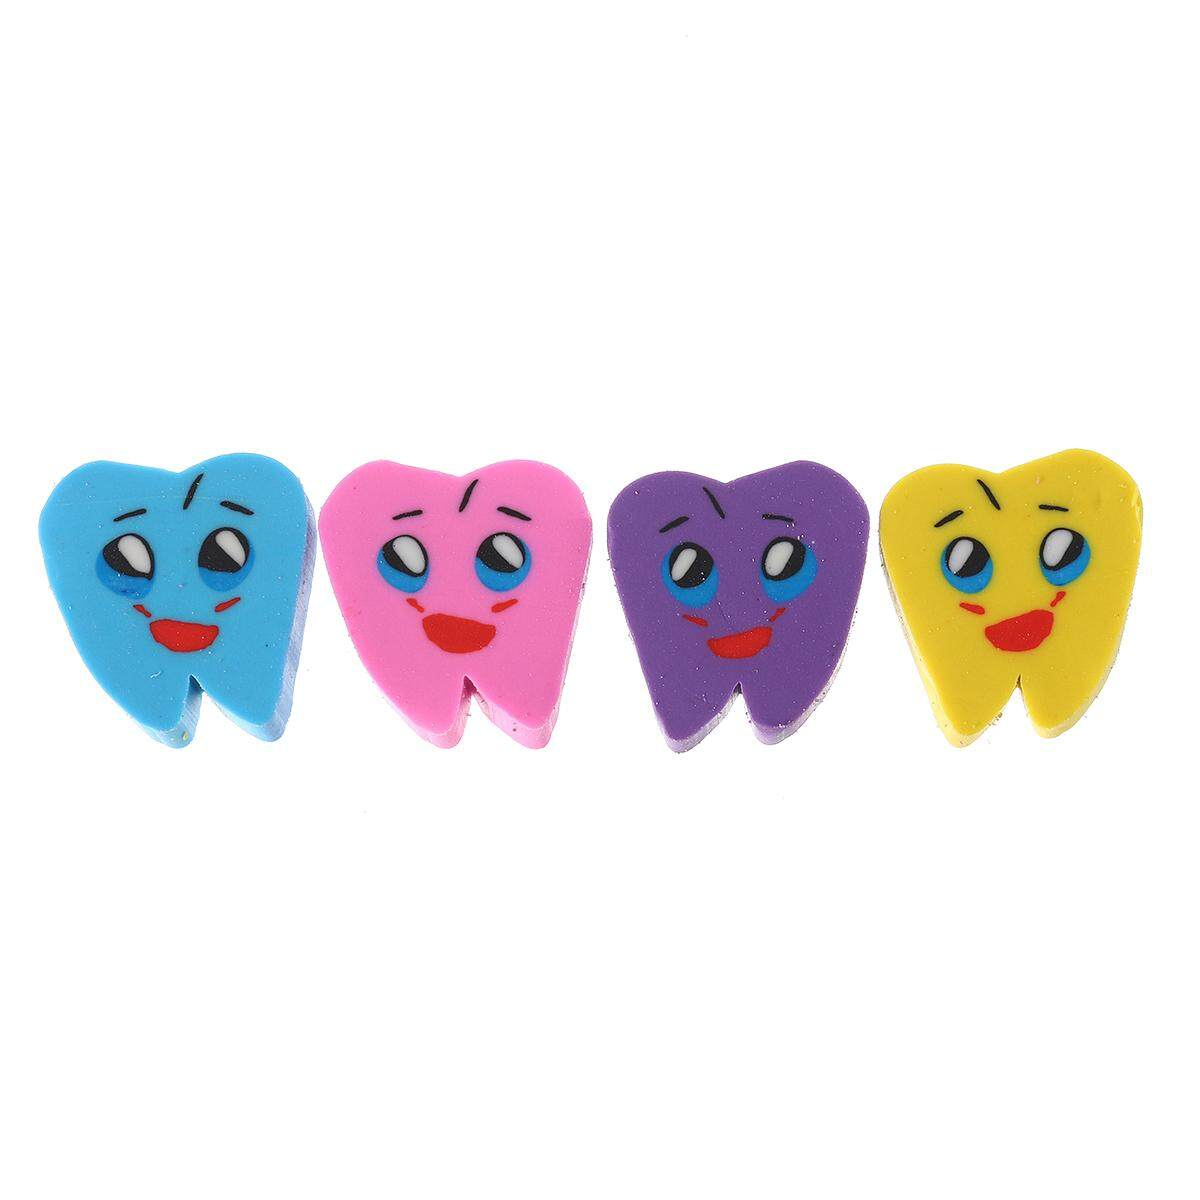 Wholesale Dental Clinic Promotional Gifts Oral Rubber Lovely Tooth Eraser Package 50 By Glimmer.